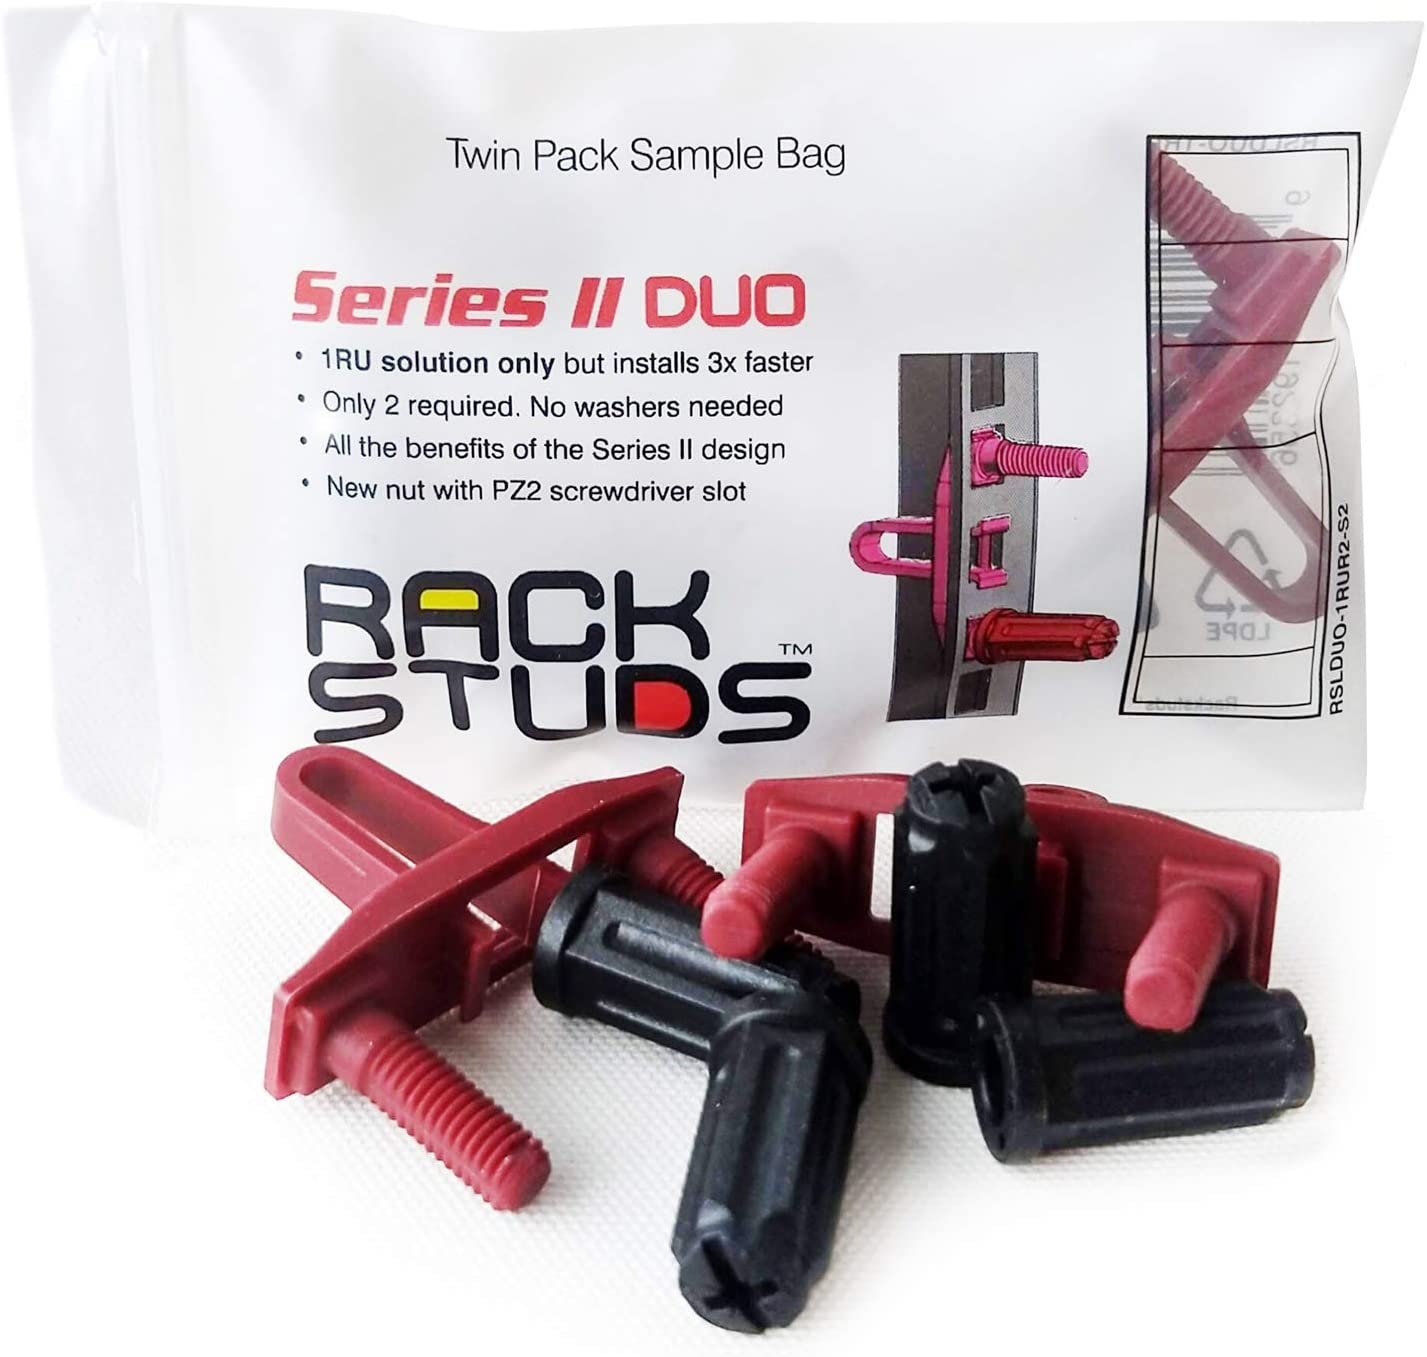 Rackstuds DUO2 1RU Rack Mount Solution Series II No More Cage Nuts Universal Version The Easiest and Safest Server Rack Solution in 19 Racks with Square Punched Vertical Rails 2-Pack Sample